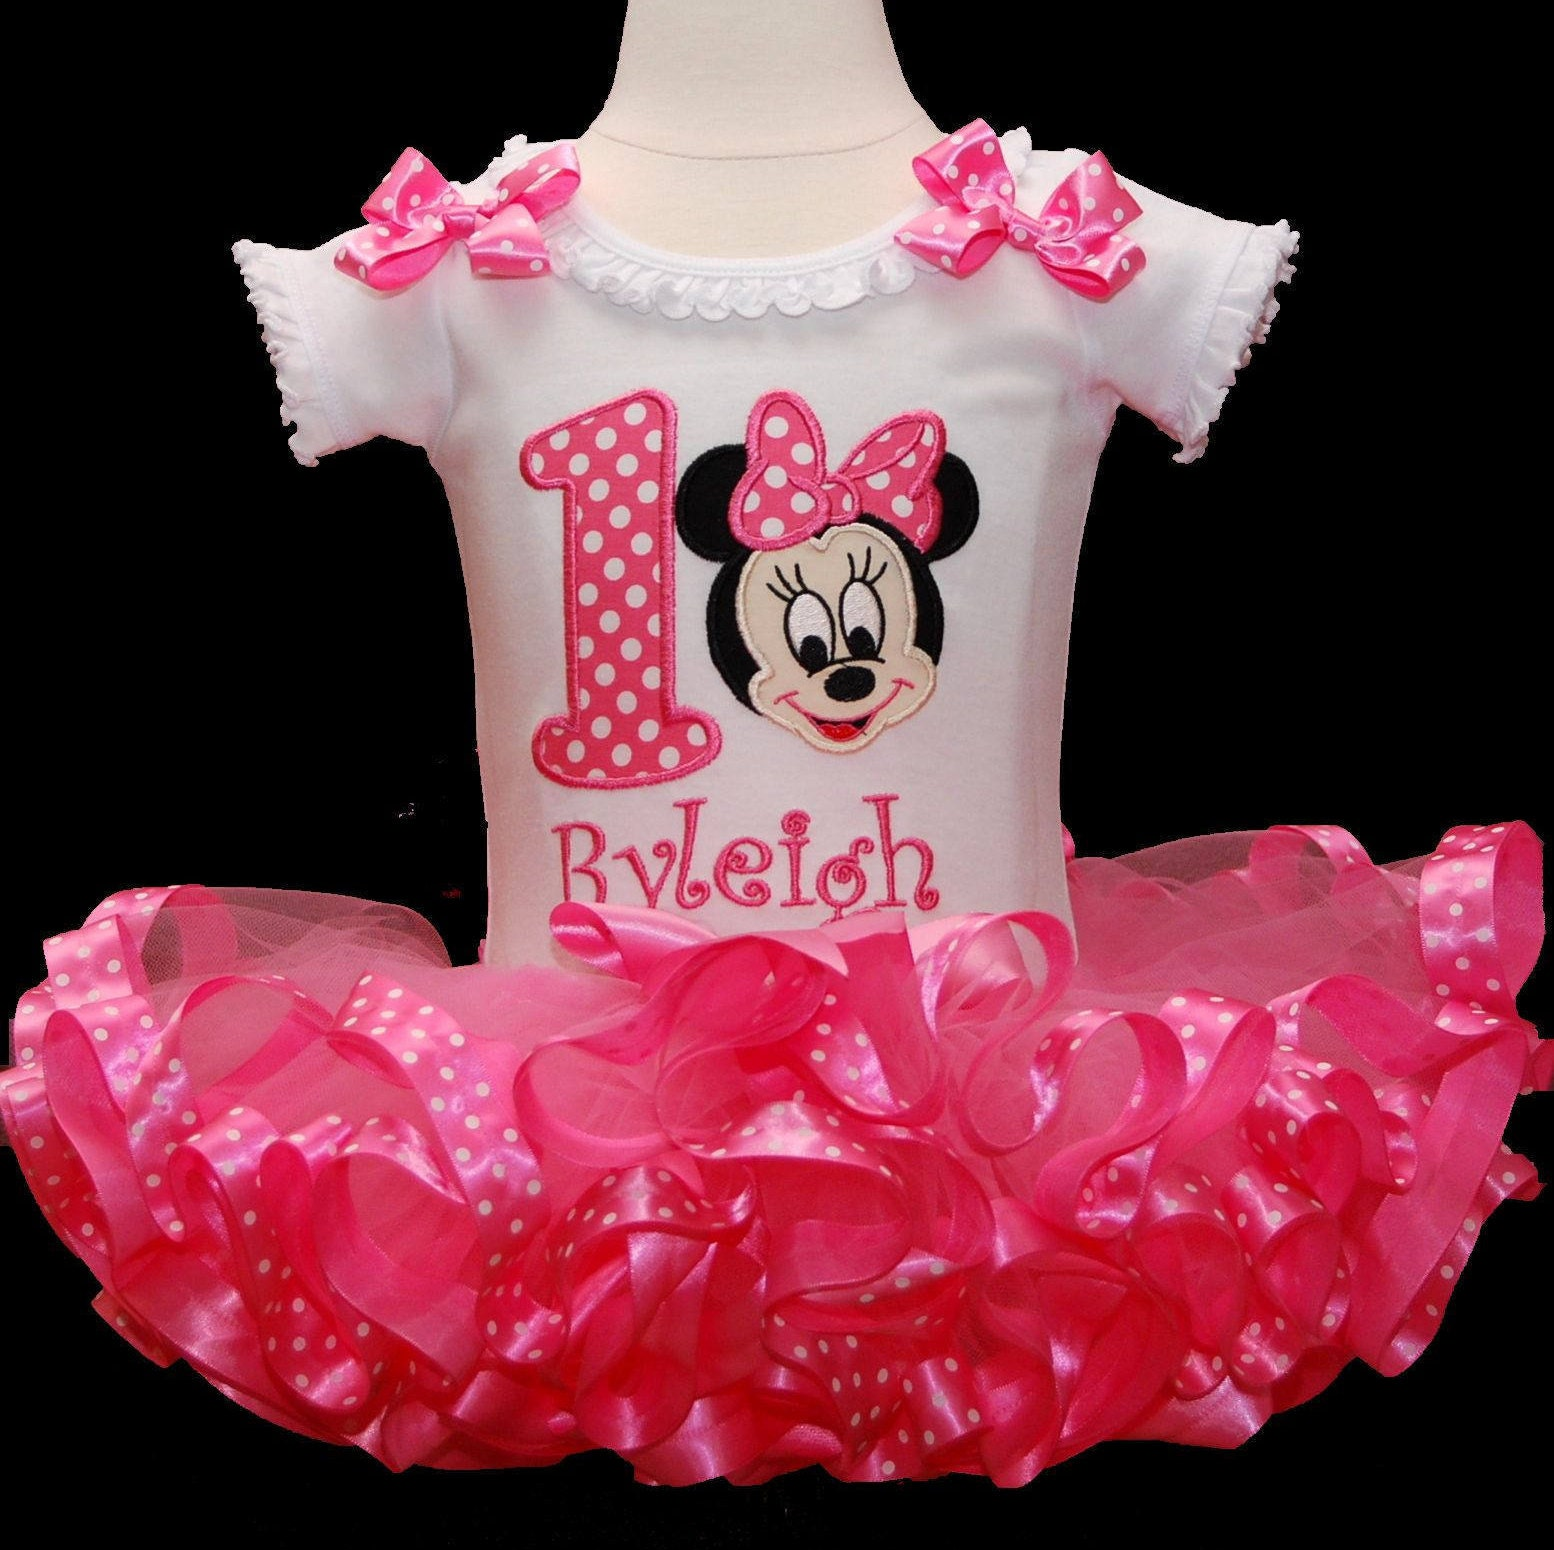 Minnie Mouse 1st Birthday Tutu Outfit, Baby Minnie Mouse tutu outfit, 1st birthday girl, cake smash outfit, birthday tutu dress. ribbon trim